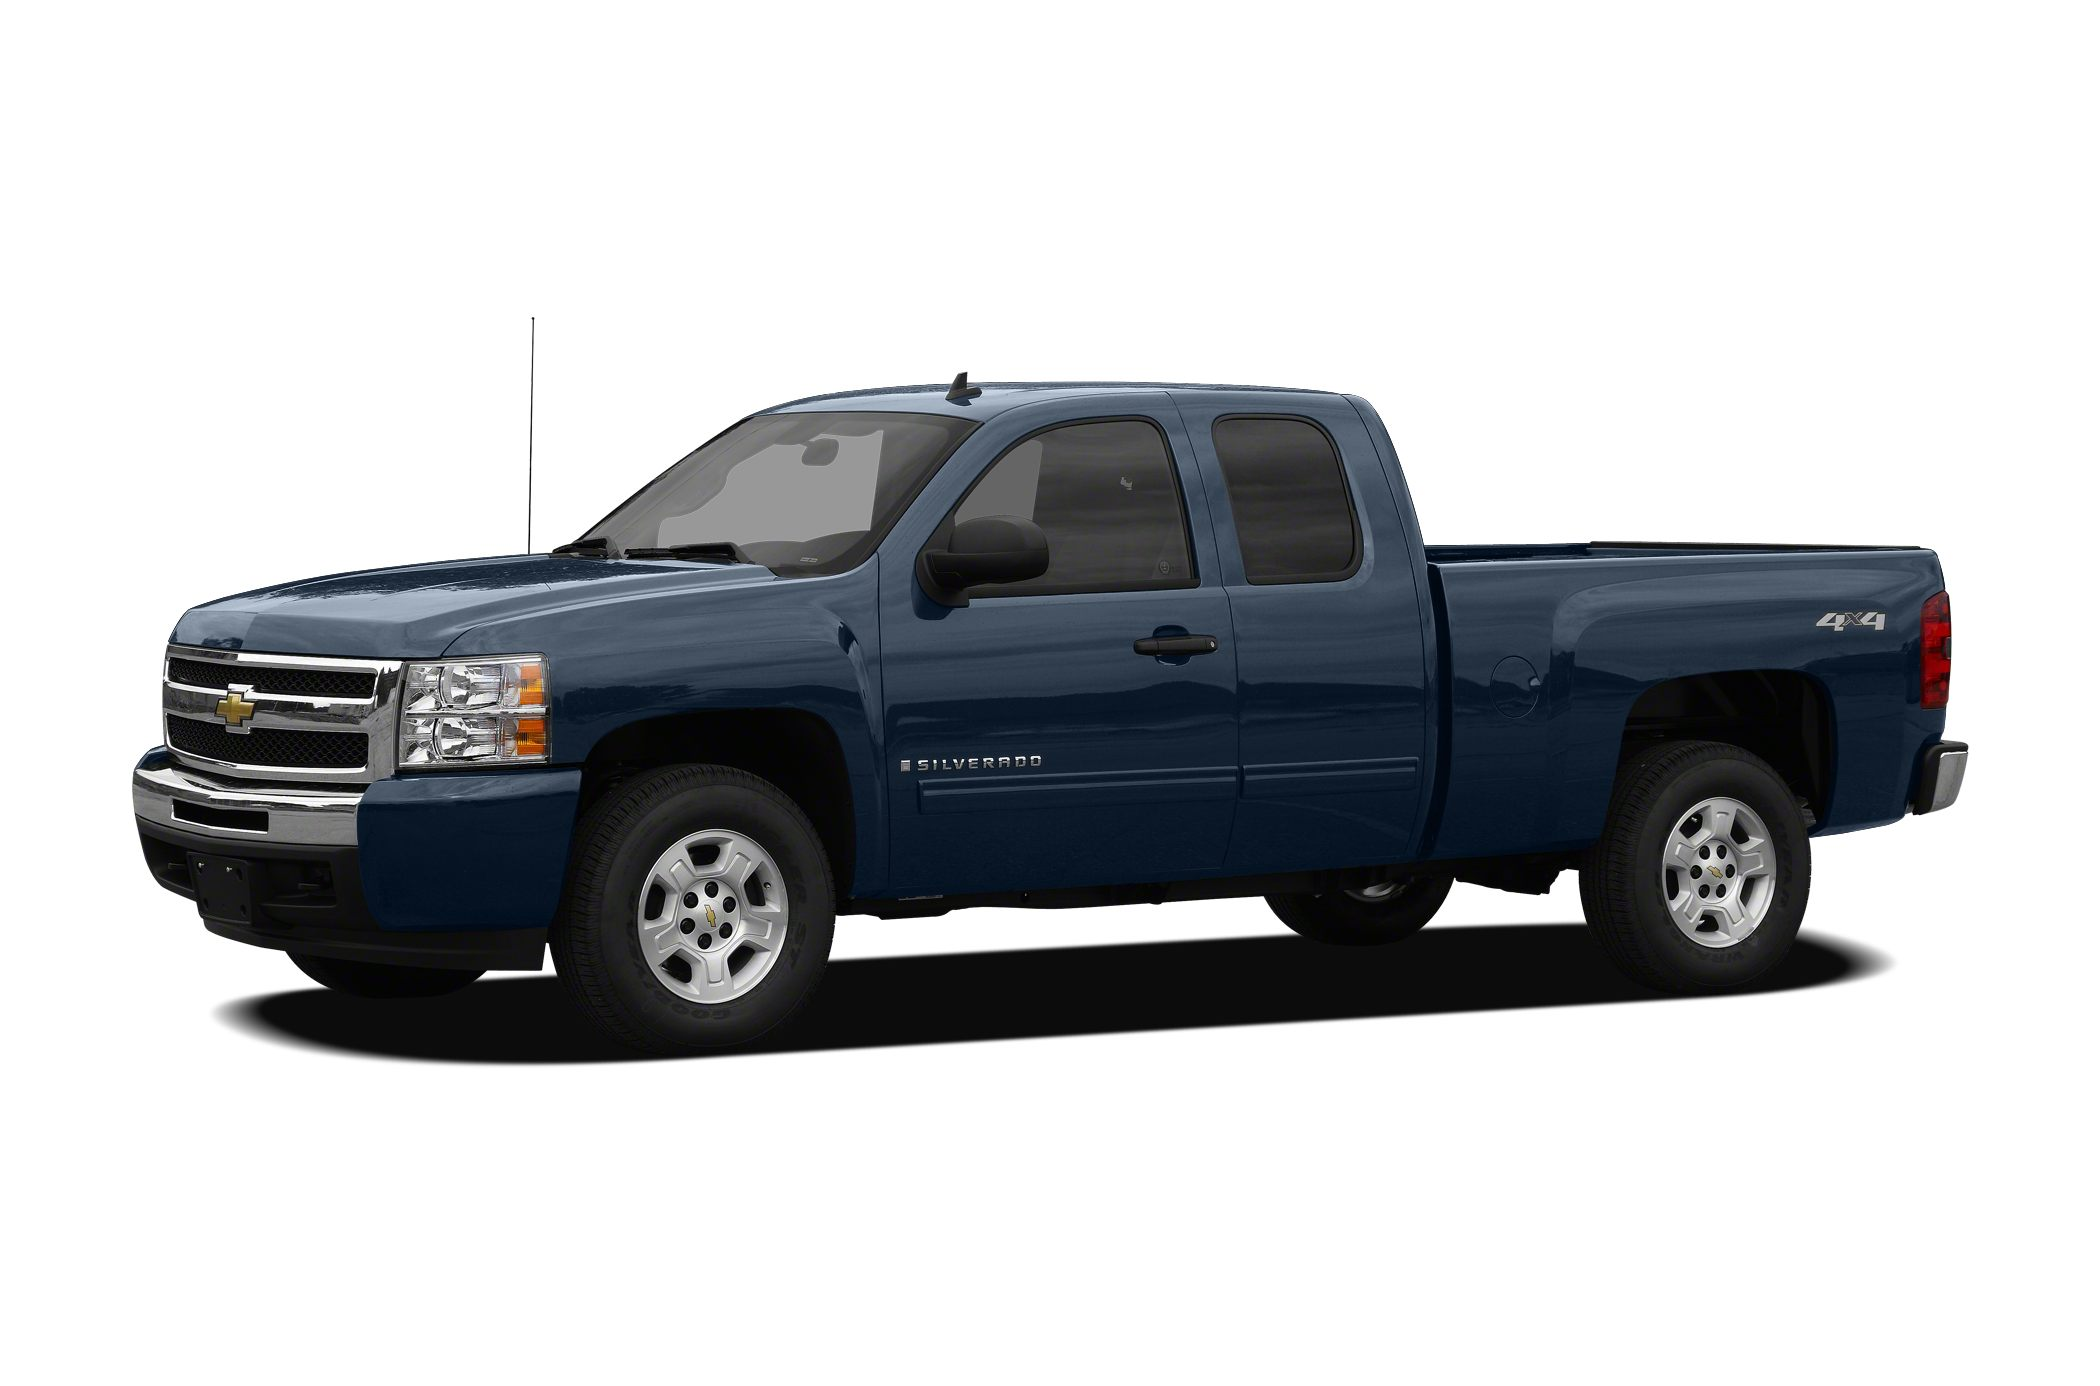 2011 Chevrolet Silverado 1500 Ltz 4x4 Extended Cab 6 6 Ft Box 143 5 In Wb Pricing And Options